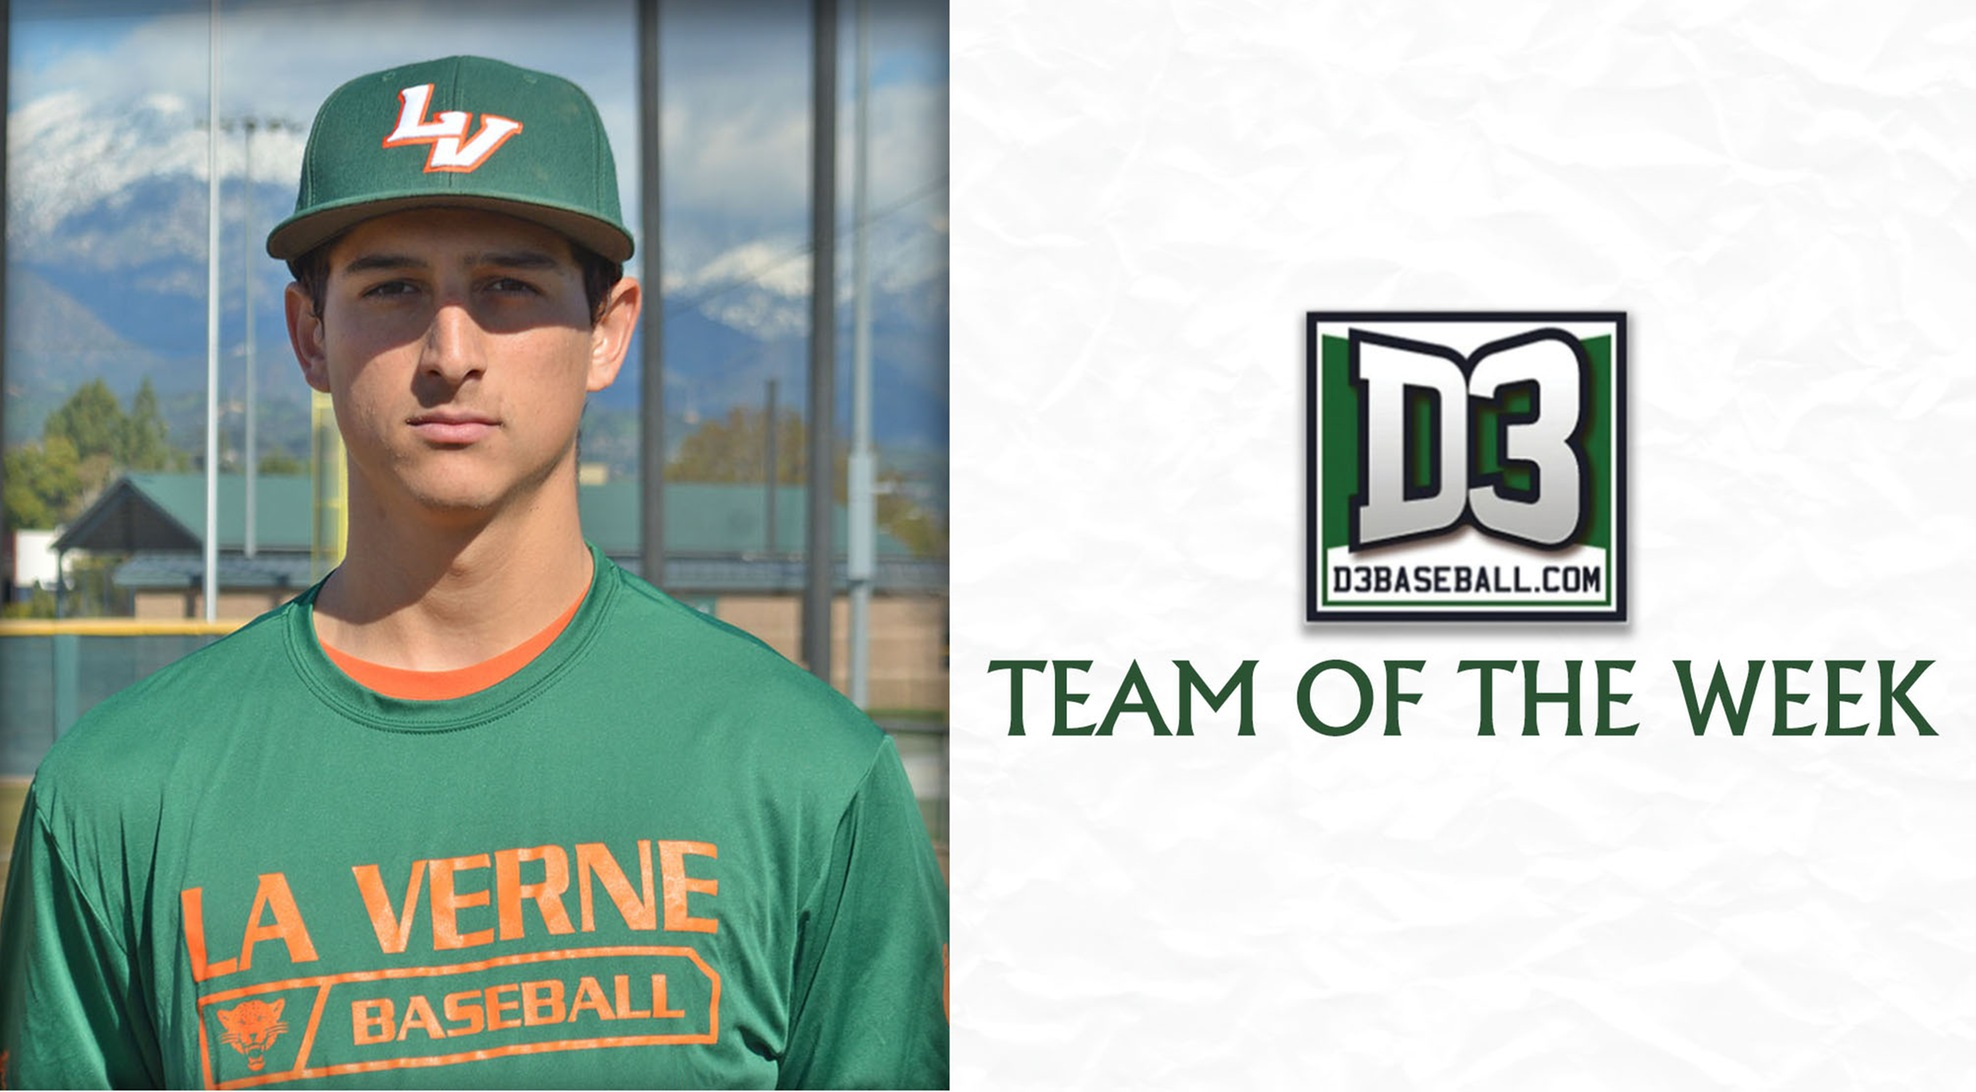 Galan Named to D3Baseball.com Team of the Week